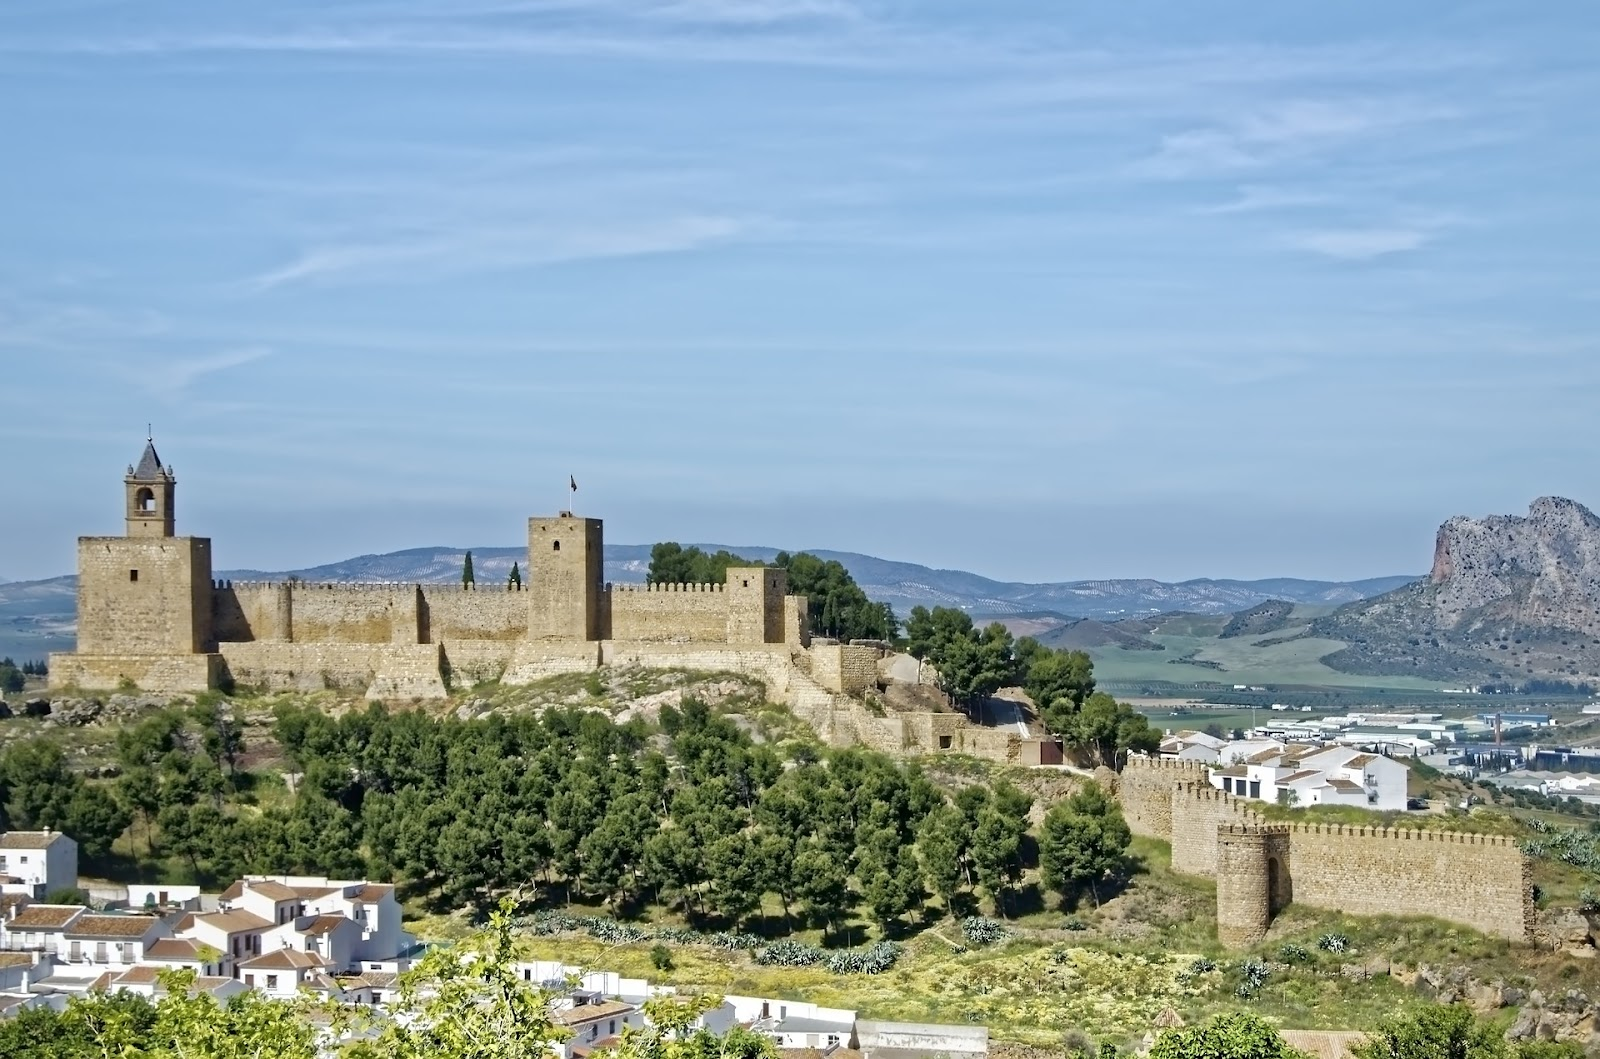 antequera alcazaba fortress castle fields in background spain